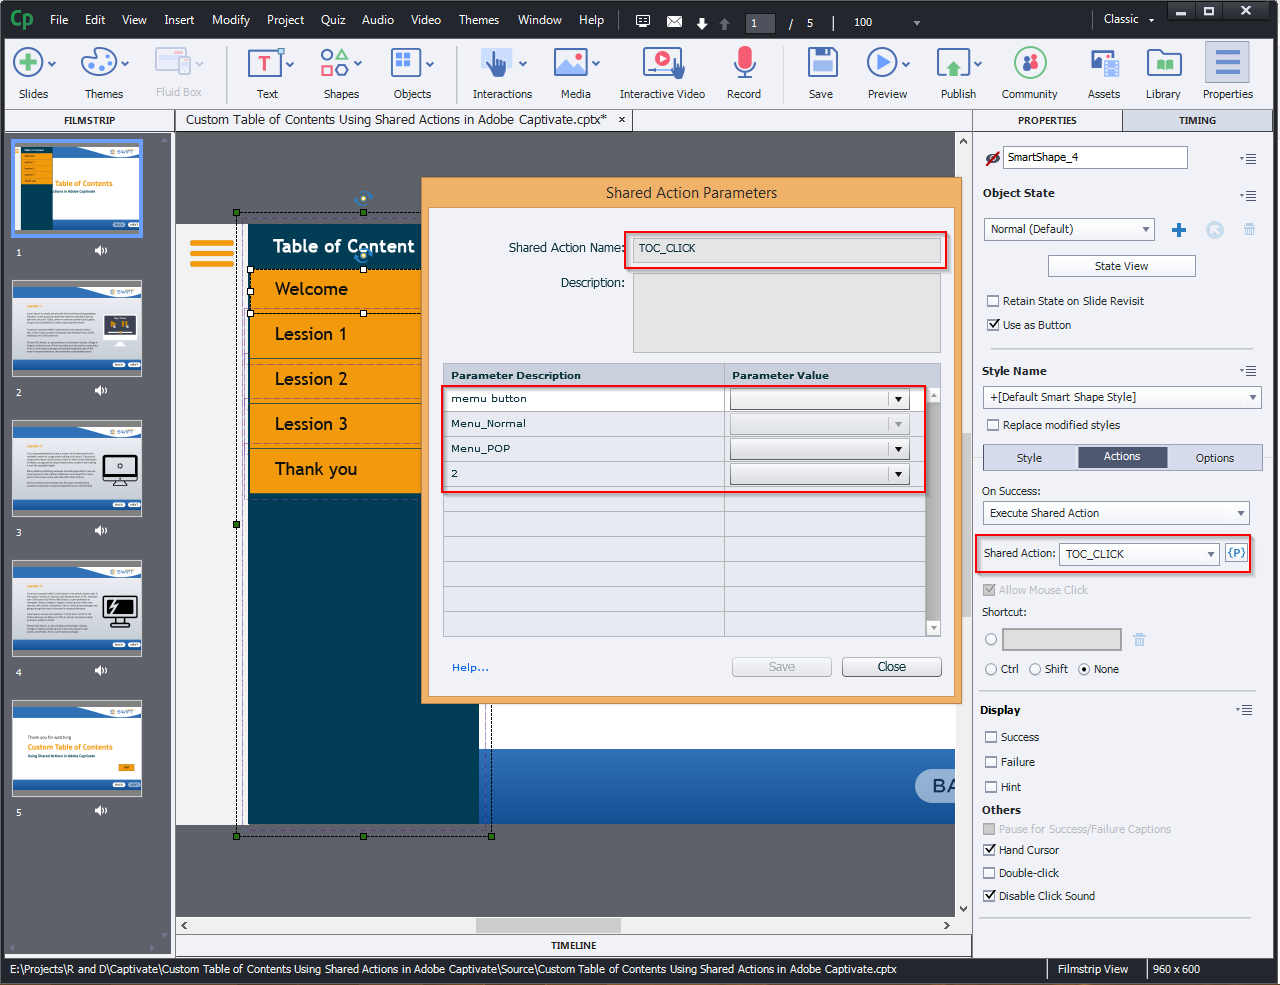 Contents Using Shared Actions in Adobe Captivate 2019 10